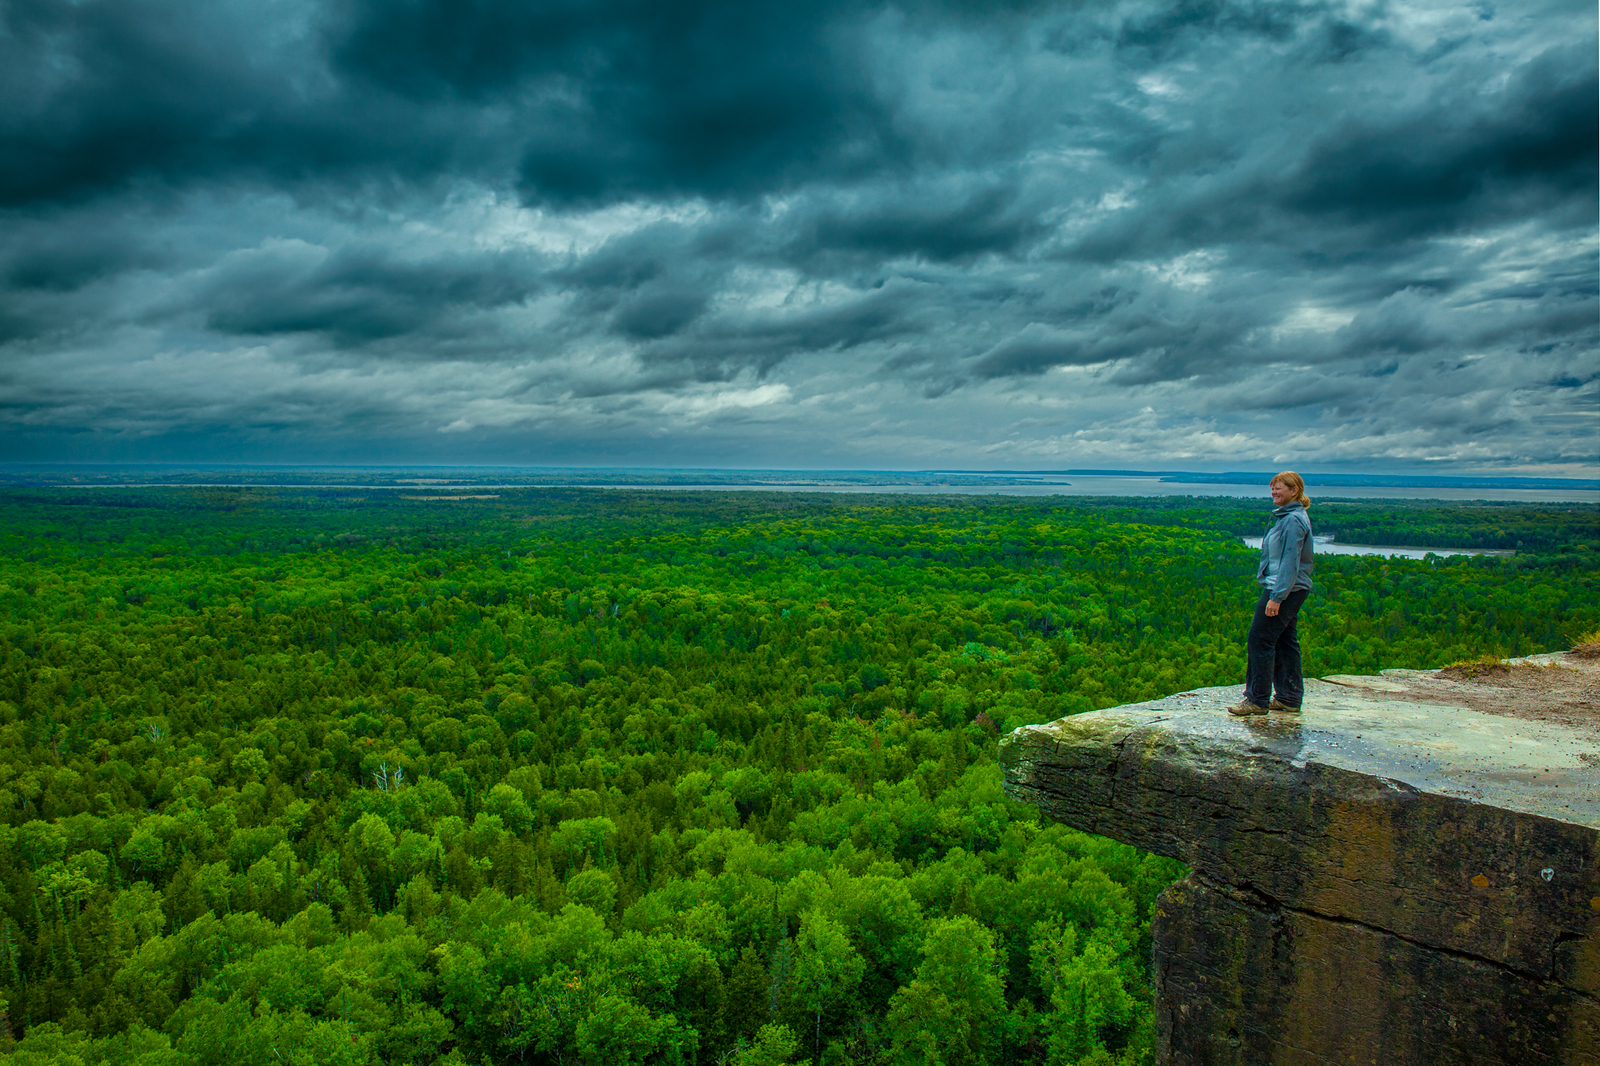 The view over Manitoulin Island from the Cup & Saucer Trail.